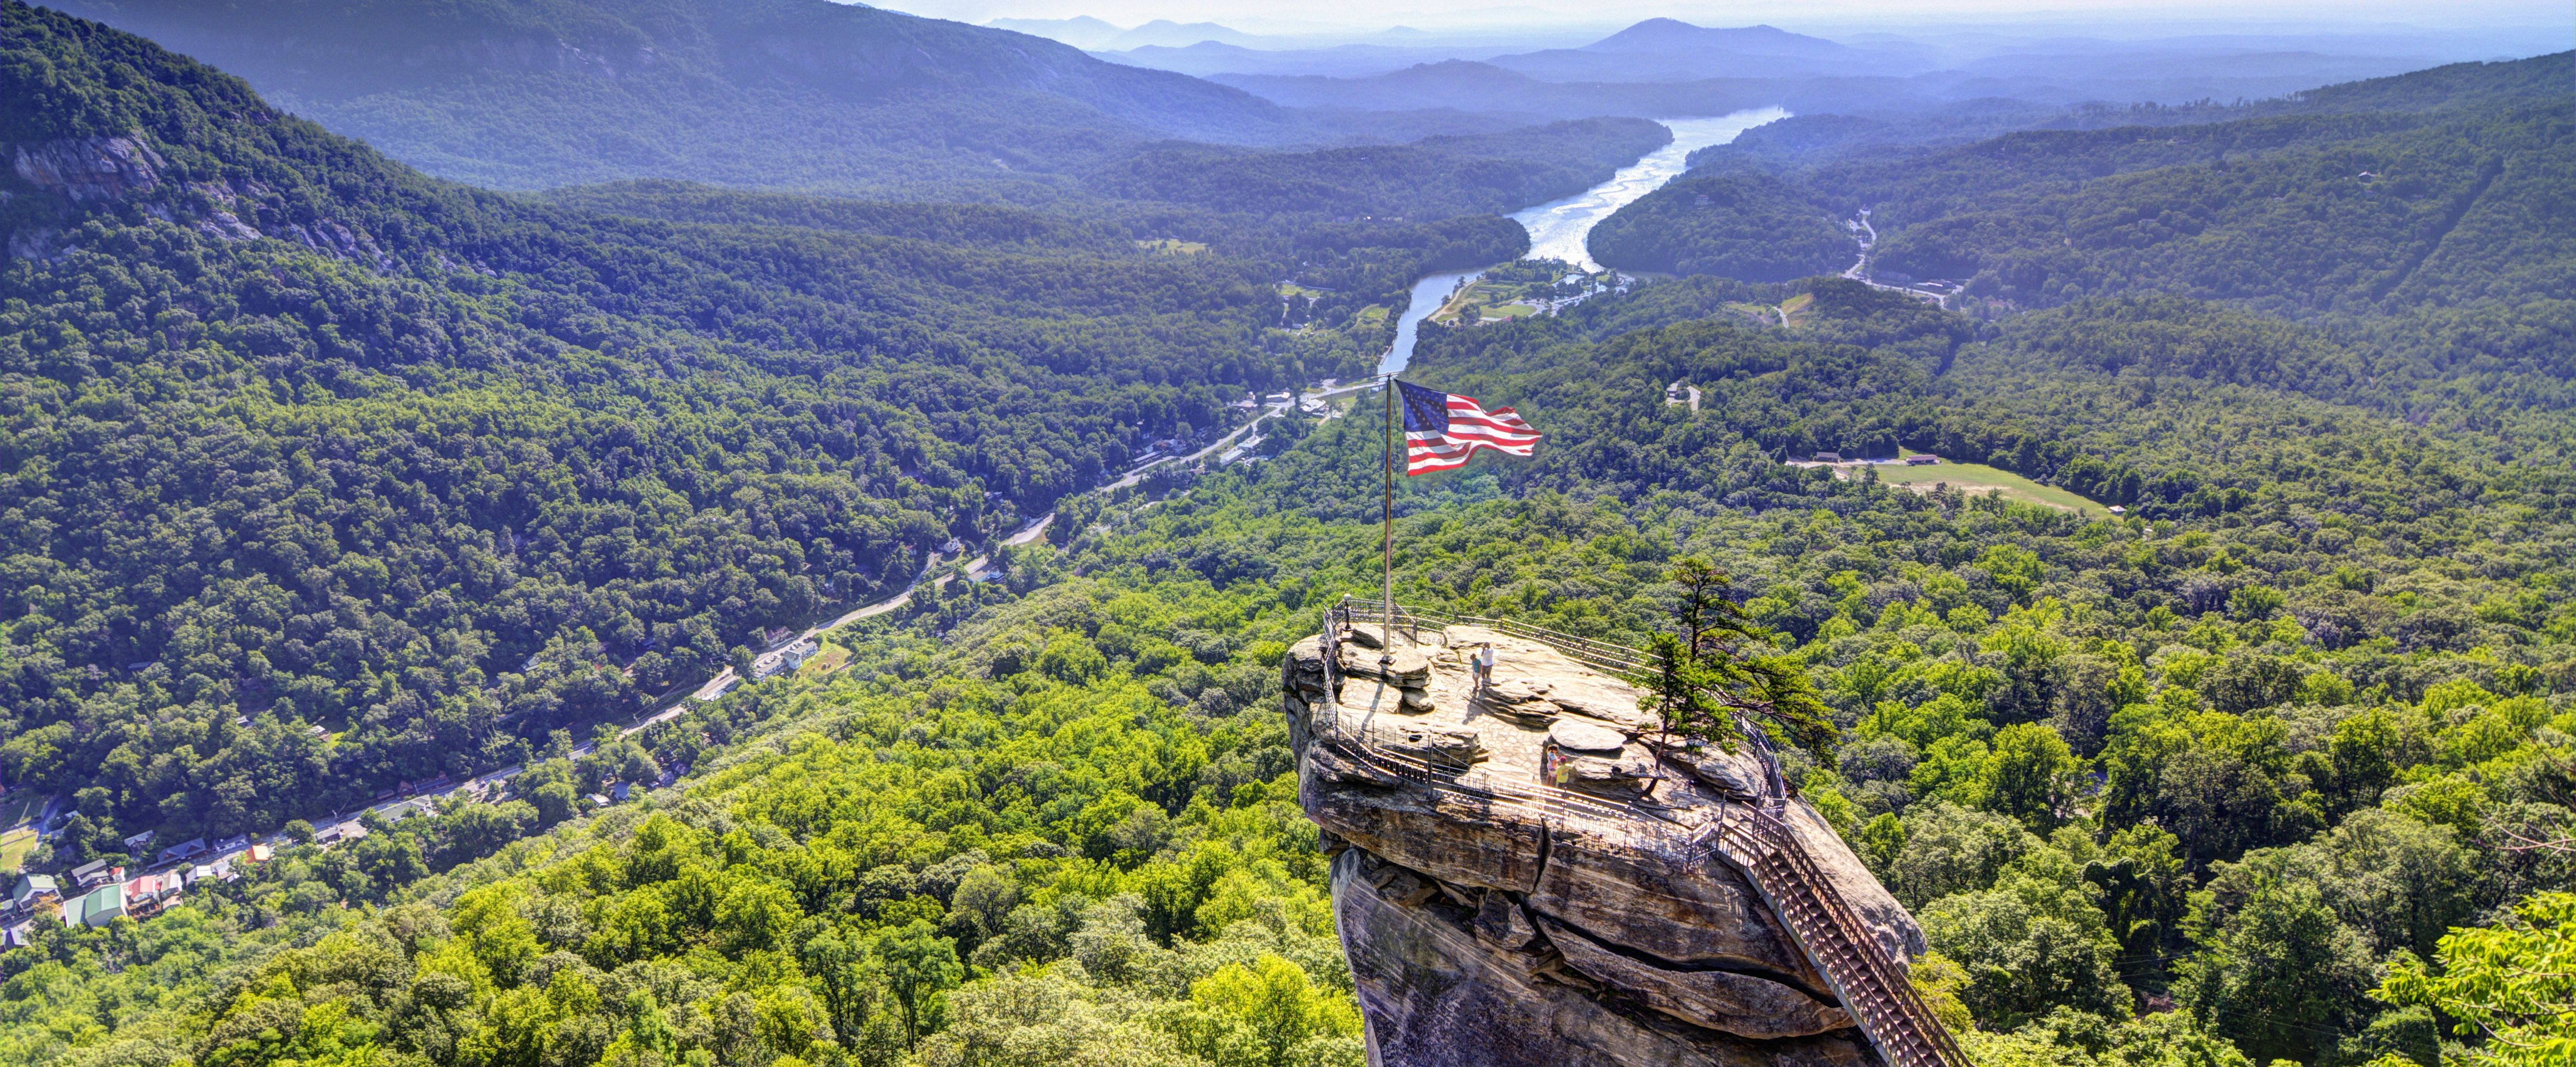 Der Chimney Rock im Chimney Rock State Park in North Carolina